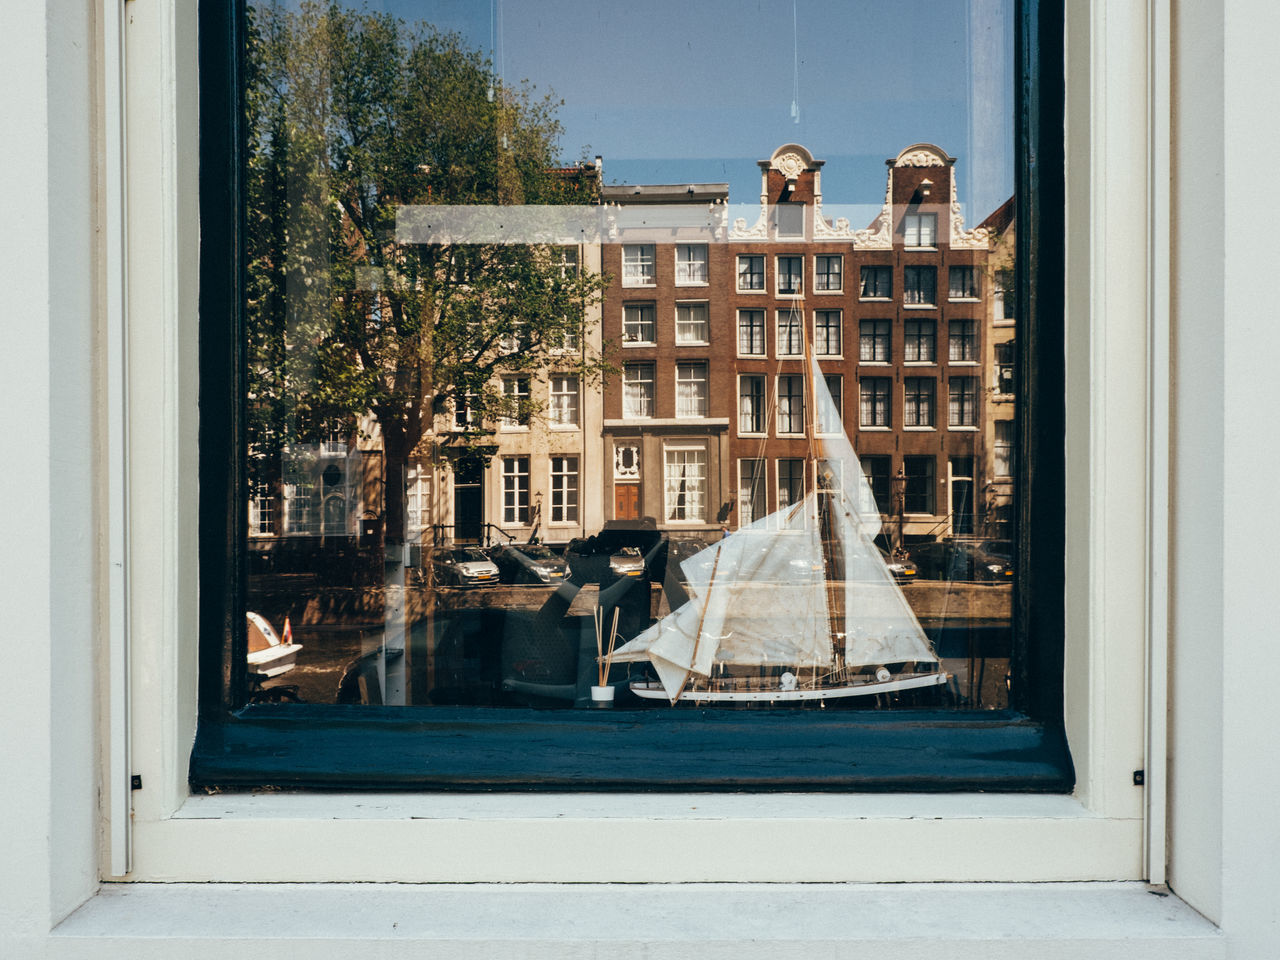 Amsterdam Architecture Building Exterior Built Structure Day Façade Netherlands Reflection Window